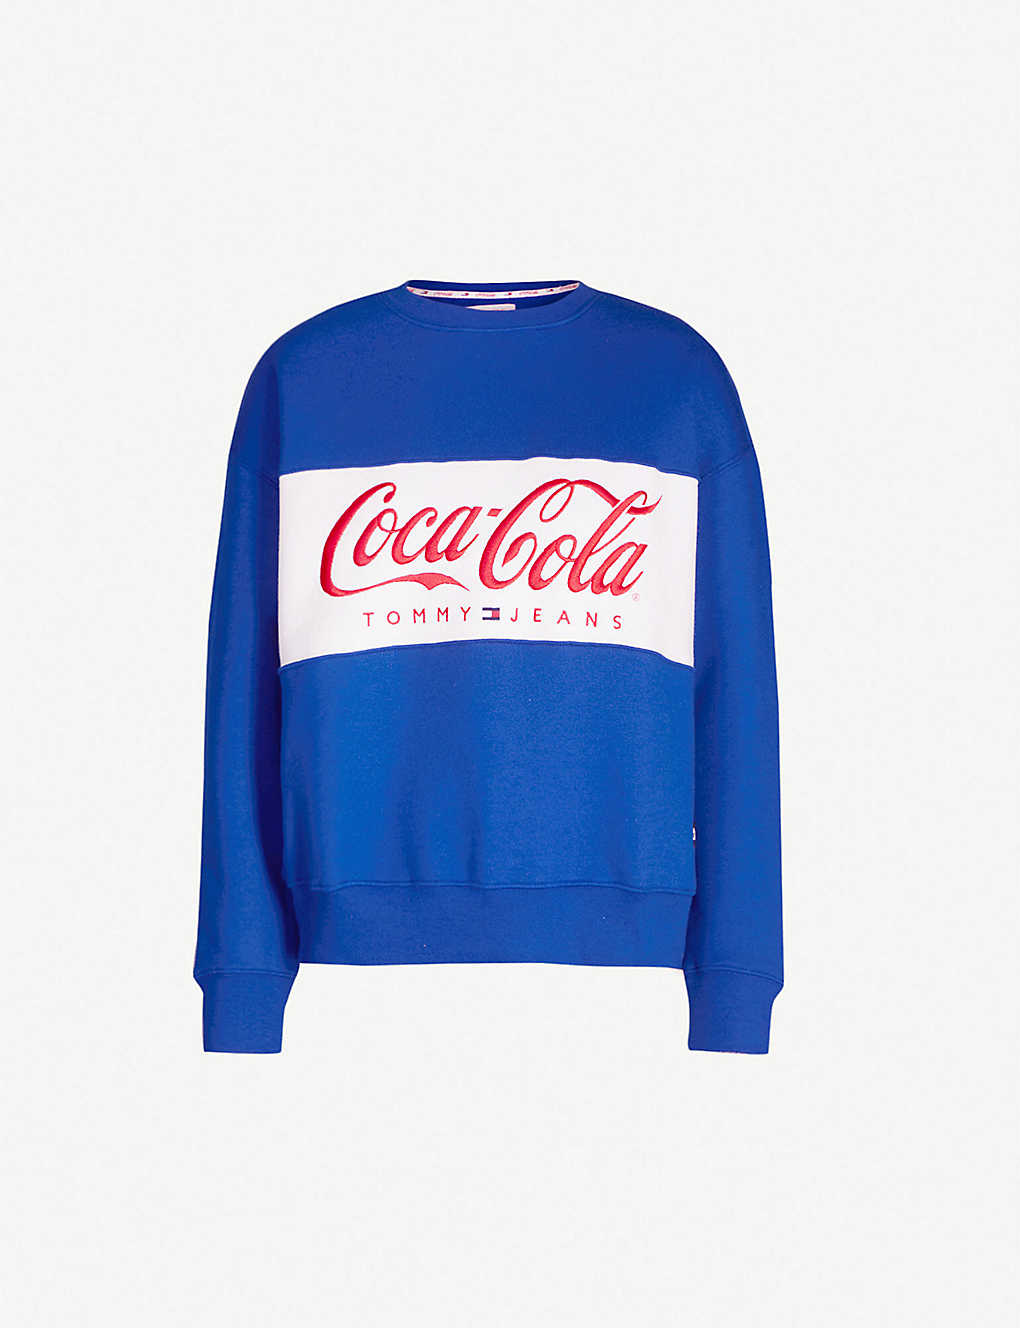 fd435c869a0 TOMMY JEANS - Tommy Jeans x Coca Cola branded cotton-blend sweatshirt